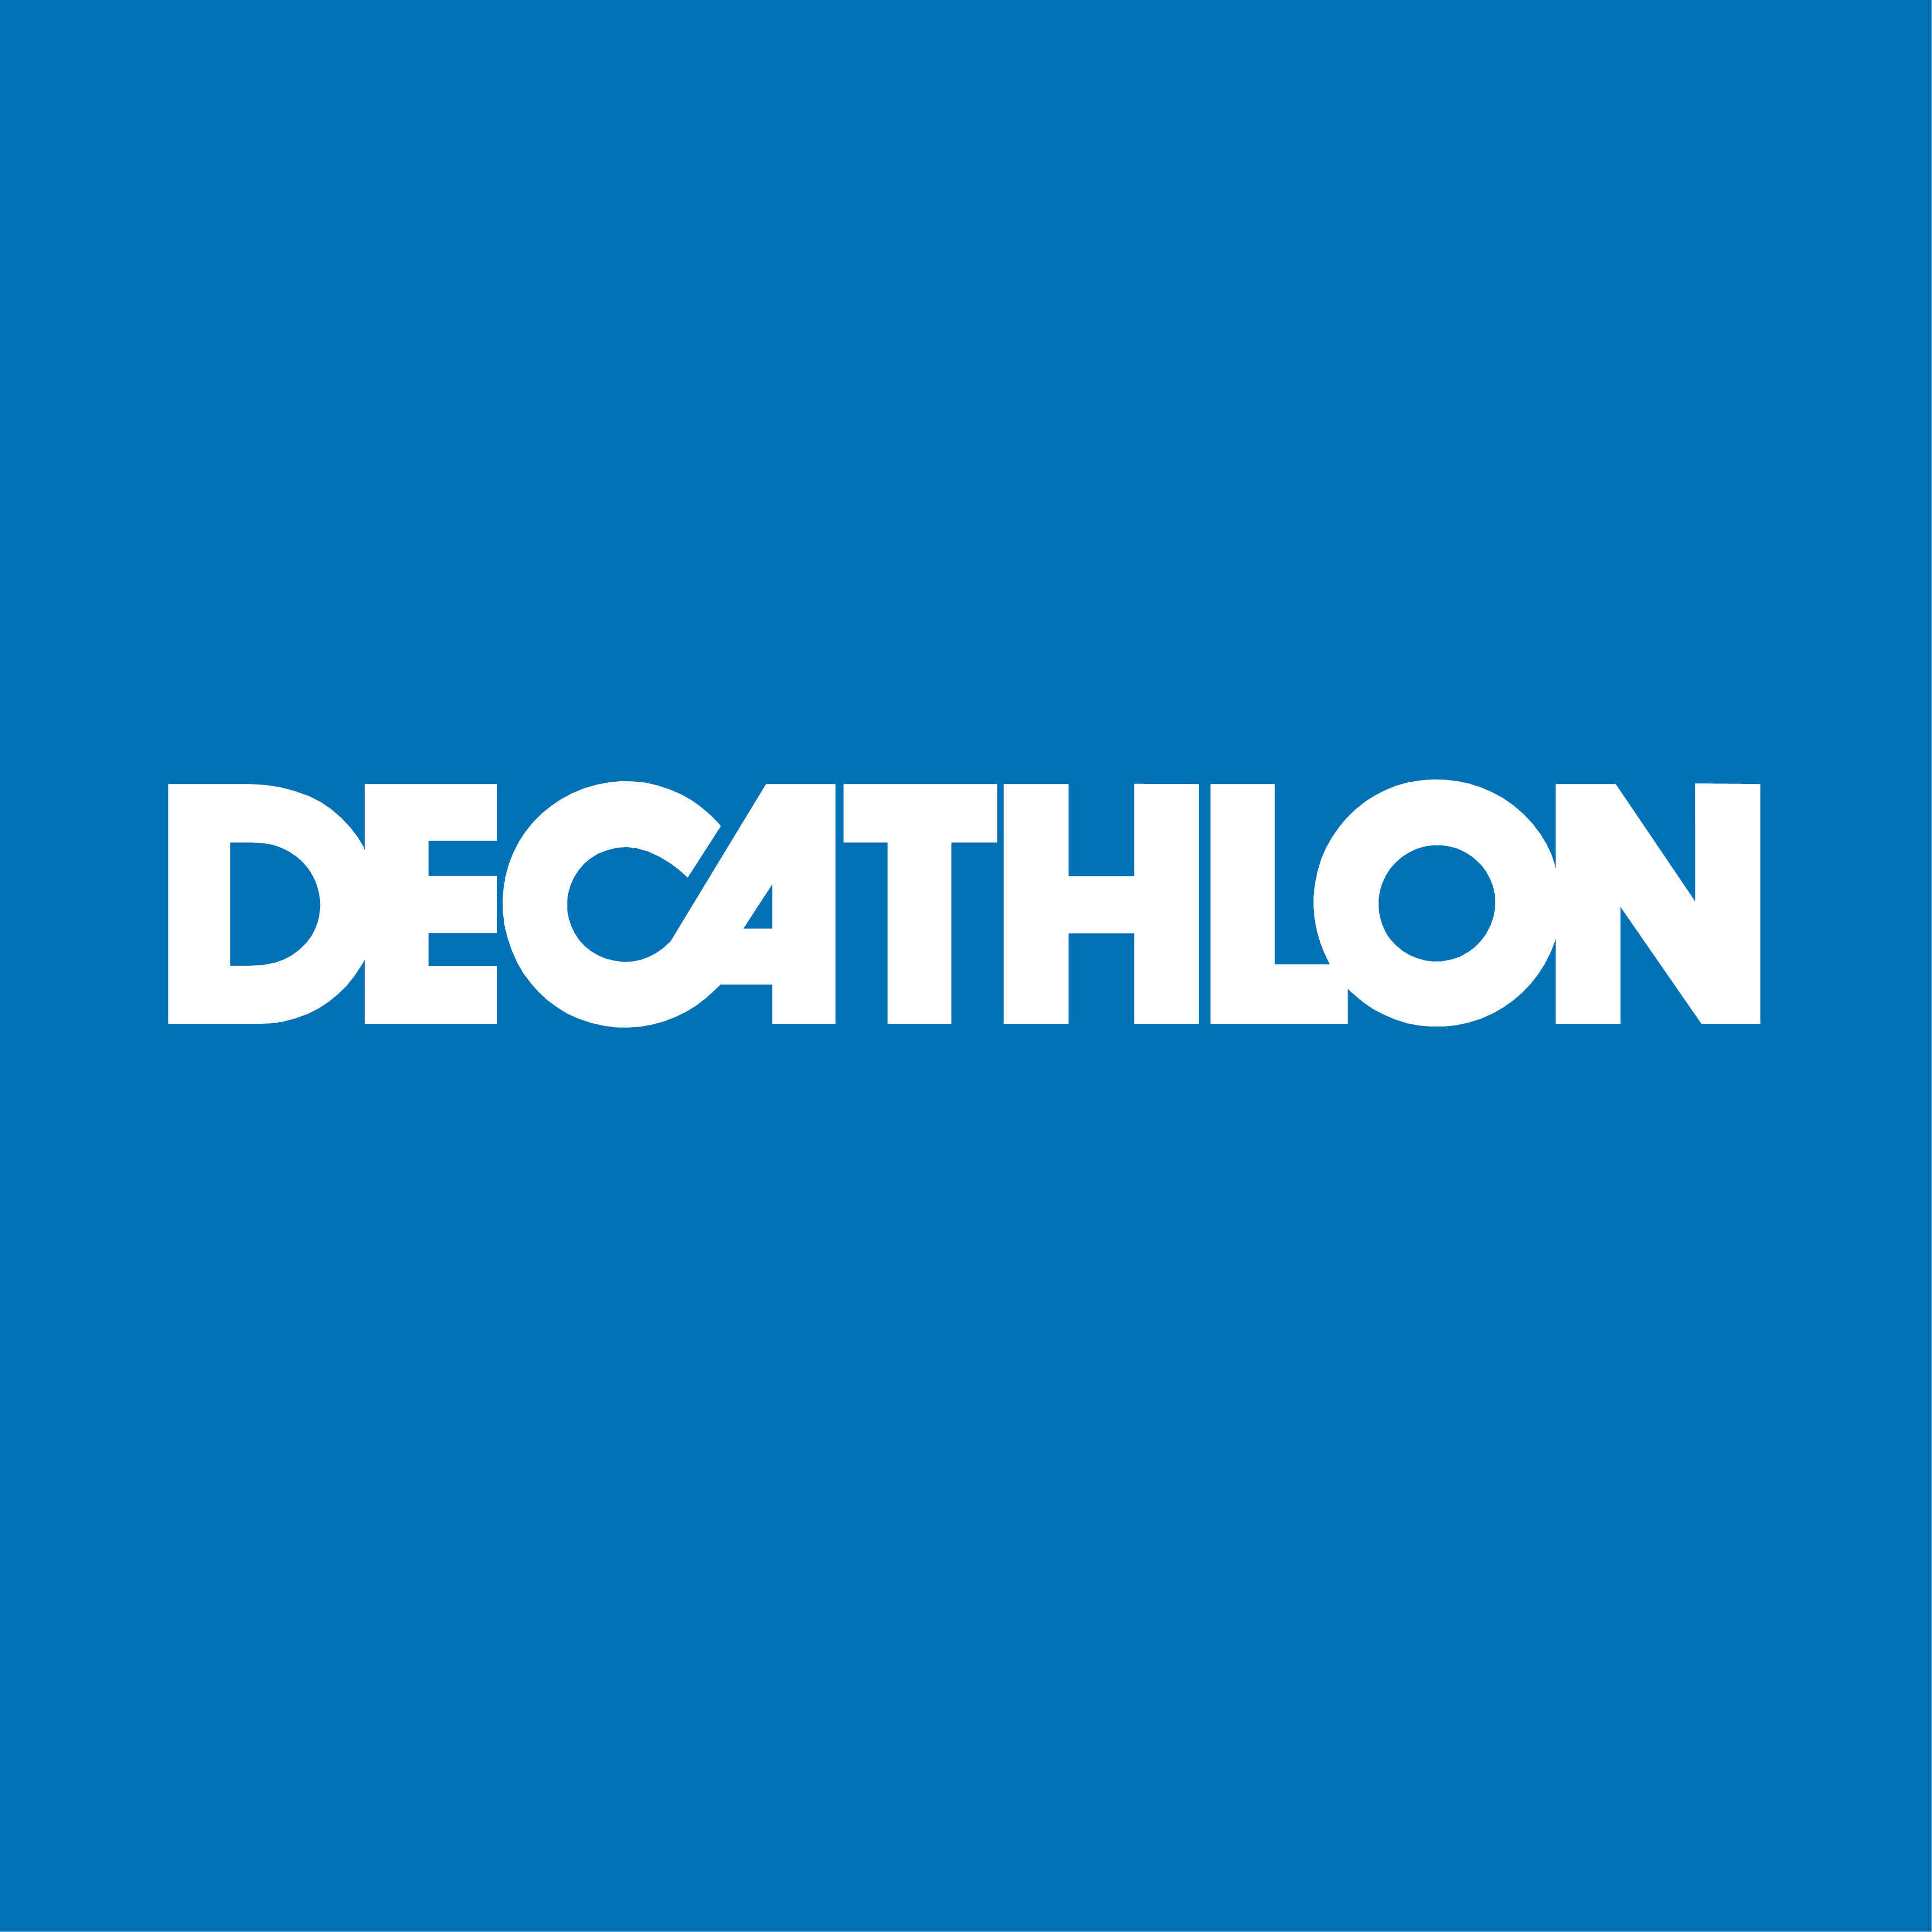 Decathlon Indonesia